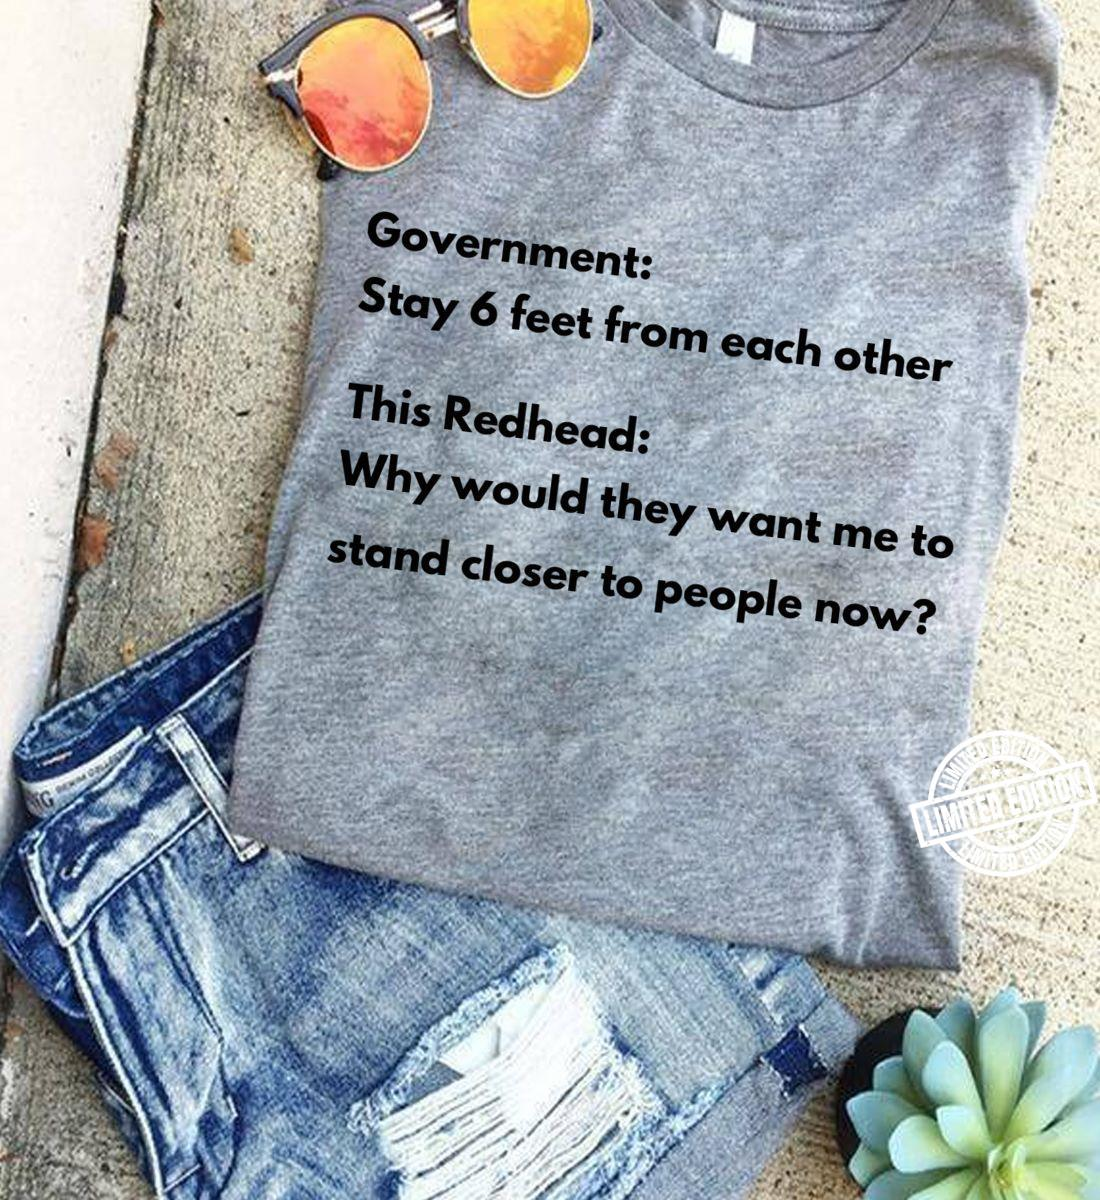 Government stay 6 feet from each other this redhead why would they want me to stand closer to people now shirt